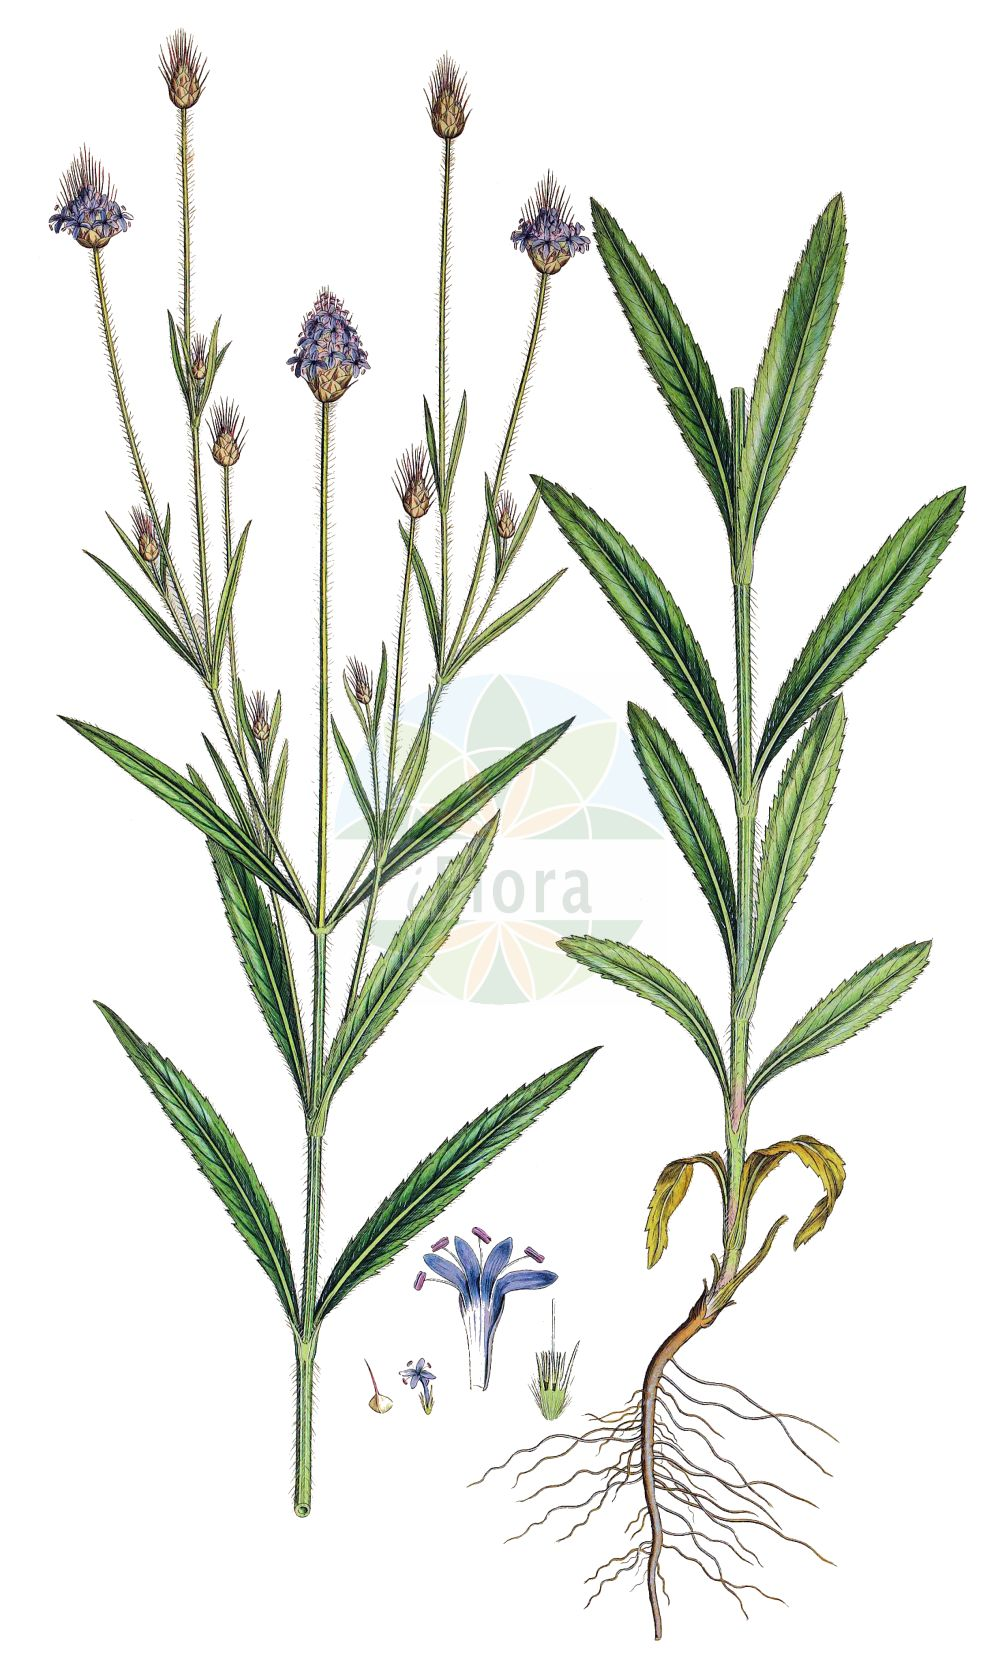 Historische Abbildung von Cephalaria syriaca. Das Bild zeigt Blatt, Bluete, Frucht und Same. ---- Historical Drawing of Cephalaria syriaca.The image is showing leaf, flower, fruit and seed.(Cephalaria syriaca,Cephalaria boissieri,Cephalaria syriaca,Scabiosa dichotoma,Scabiosa syriaca,Cephalaria,Caprifoliaceae,Geissblattgewaechse,Honeysuckle family,Blatt,Bluete,Frucht,Same,leaf,flower,fruit,seed,Sibthrop & Smith (1806-1840))